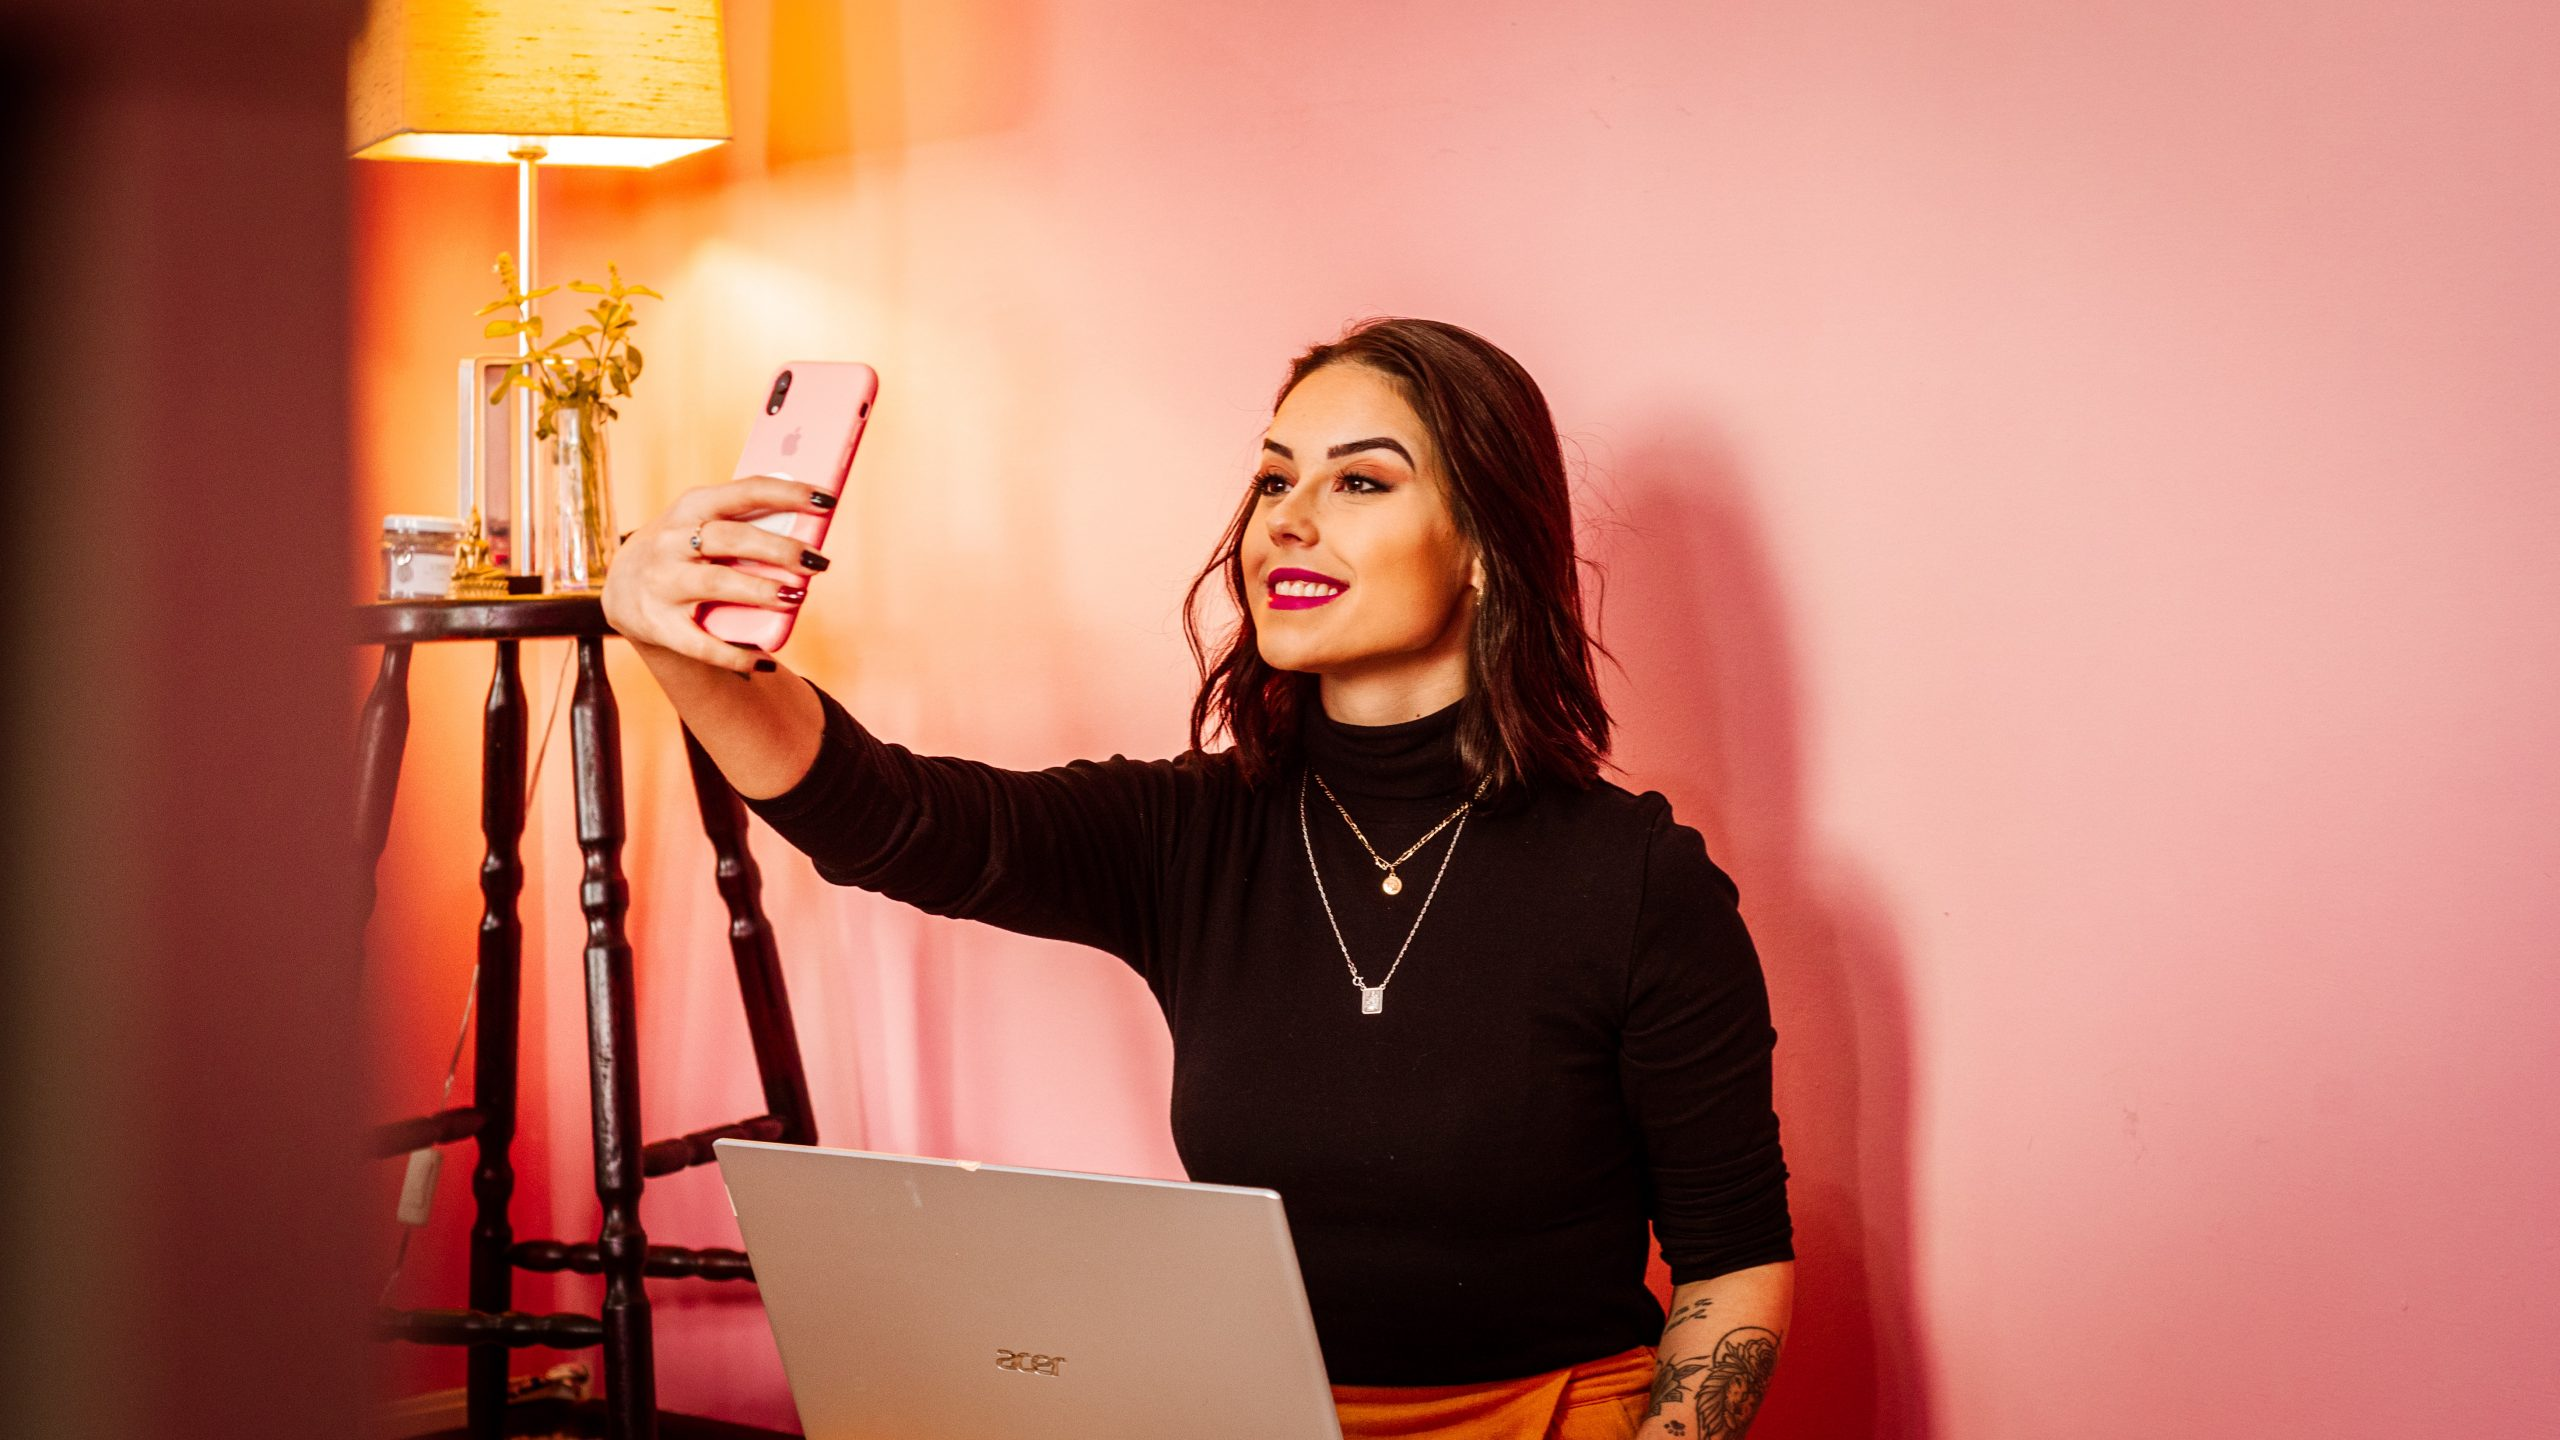 Five tips for working with influencers